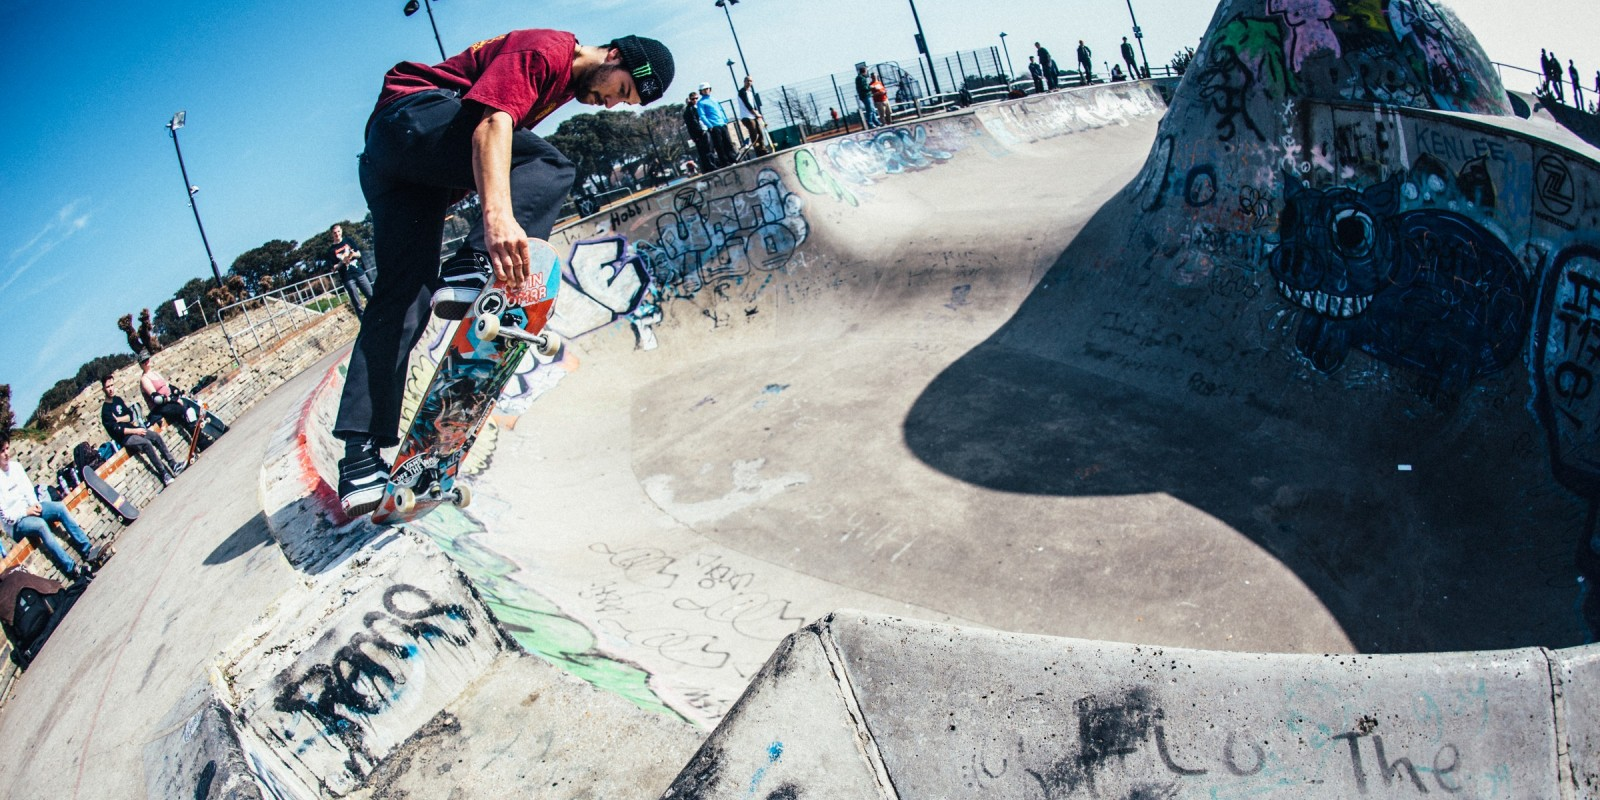 Photos from Battle of Hastings 2017 Skate competition